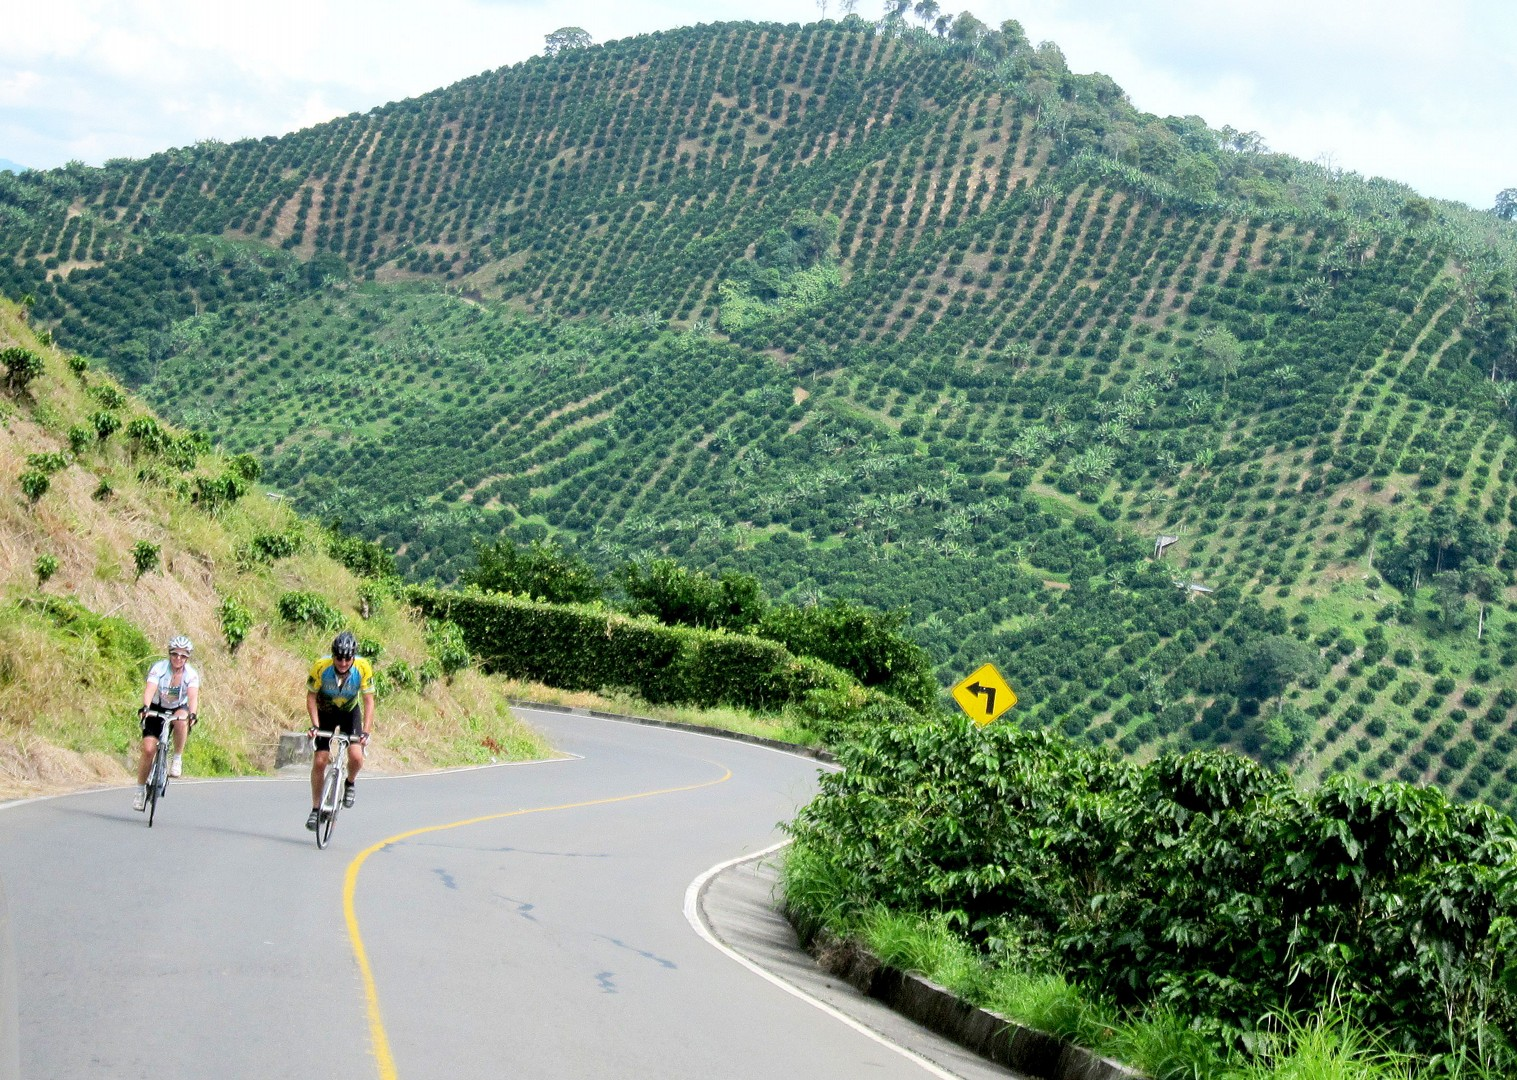 colombia-road-cycling-holiday-skedaddle-alto-de-letras.jpg - Colombia - Emerald Mountains - Road Cycling